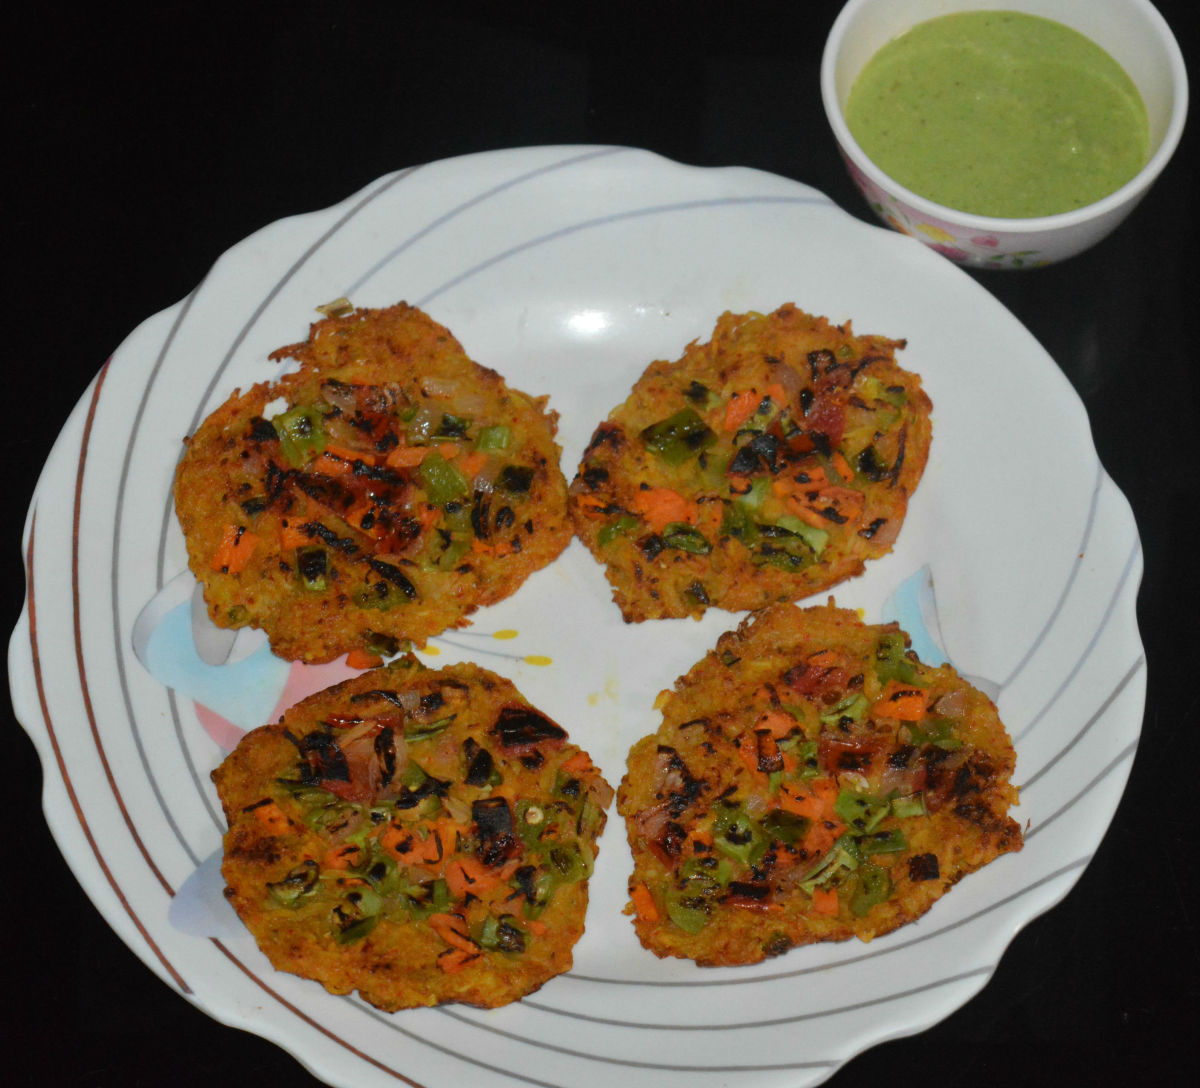 Spicy Potato Pancakes served with green chutney/sauce